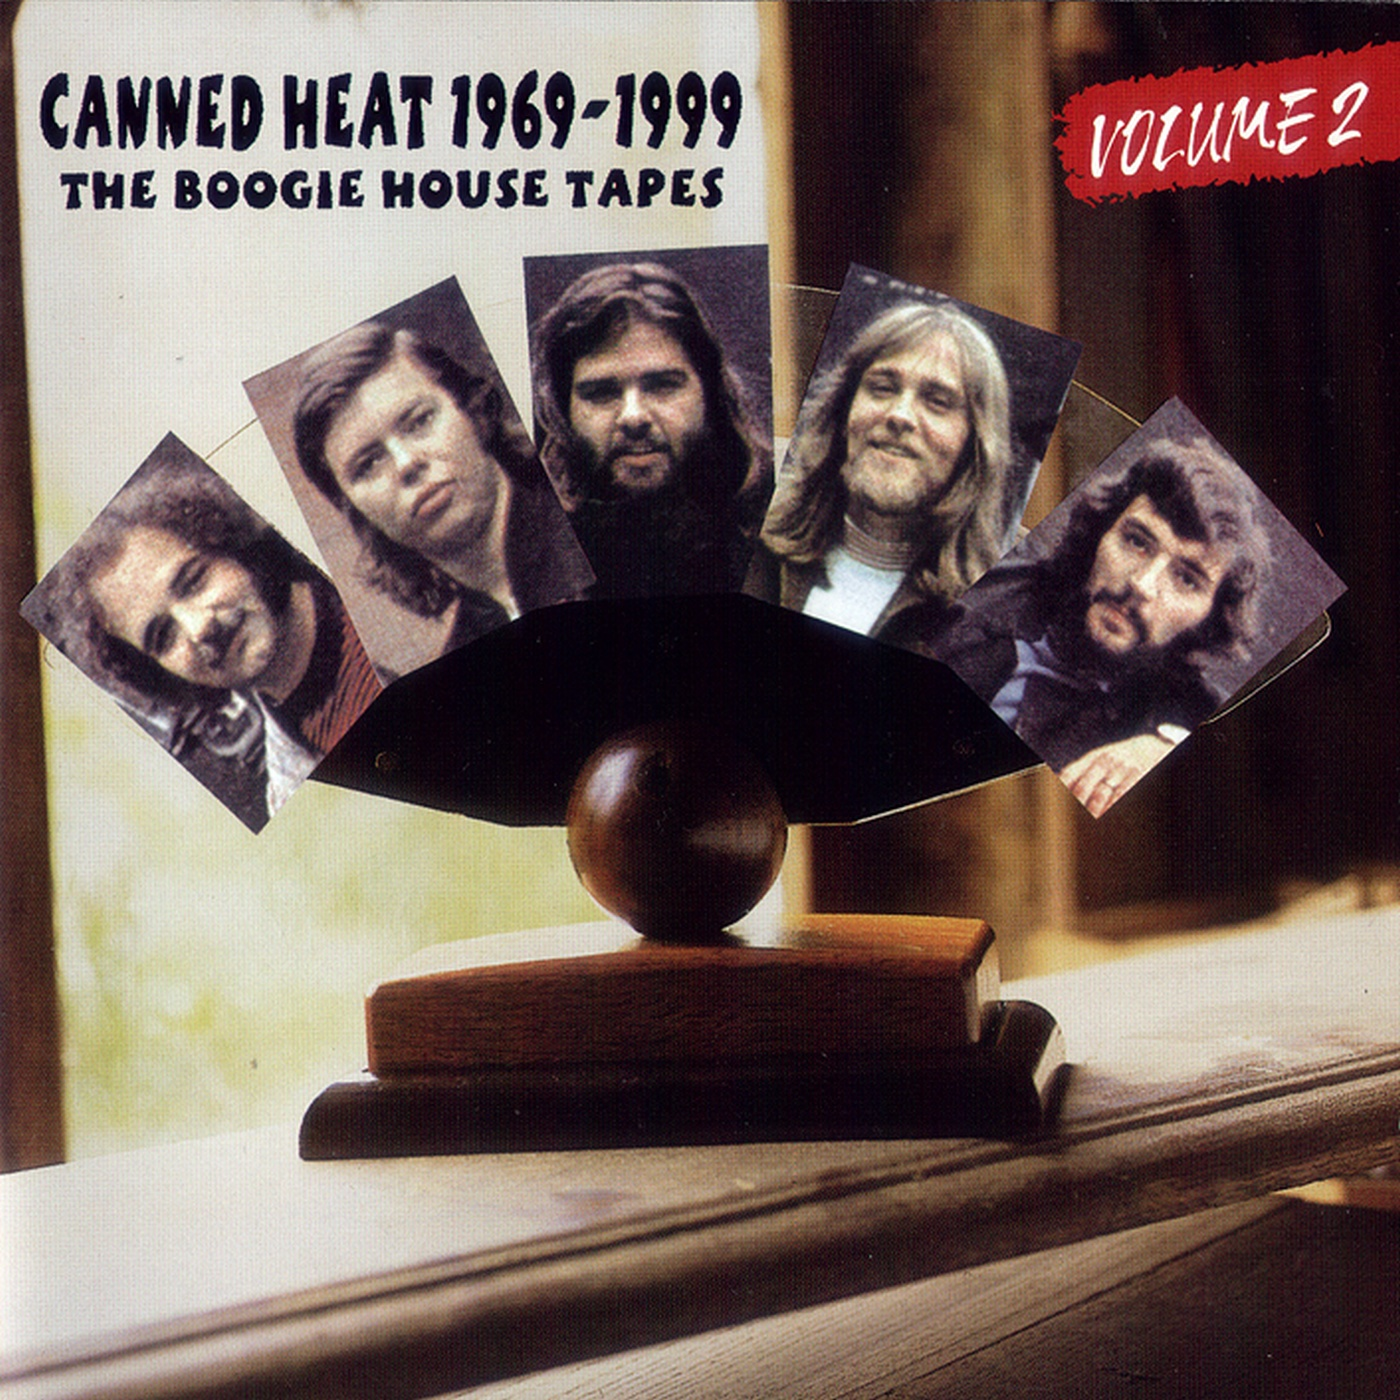 Canned Heat - The Boogie House Tapes 1969-1999 Vol.2 (2004)